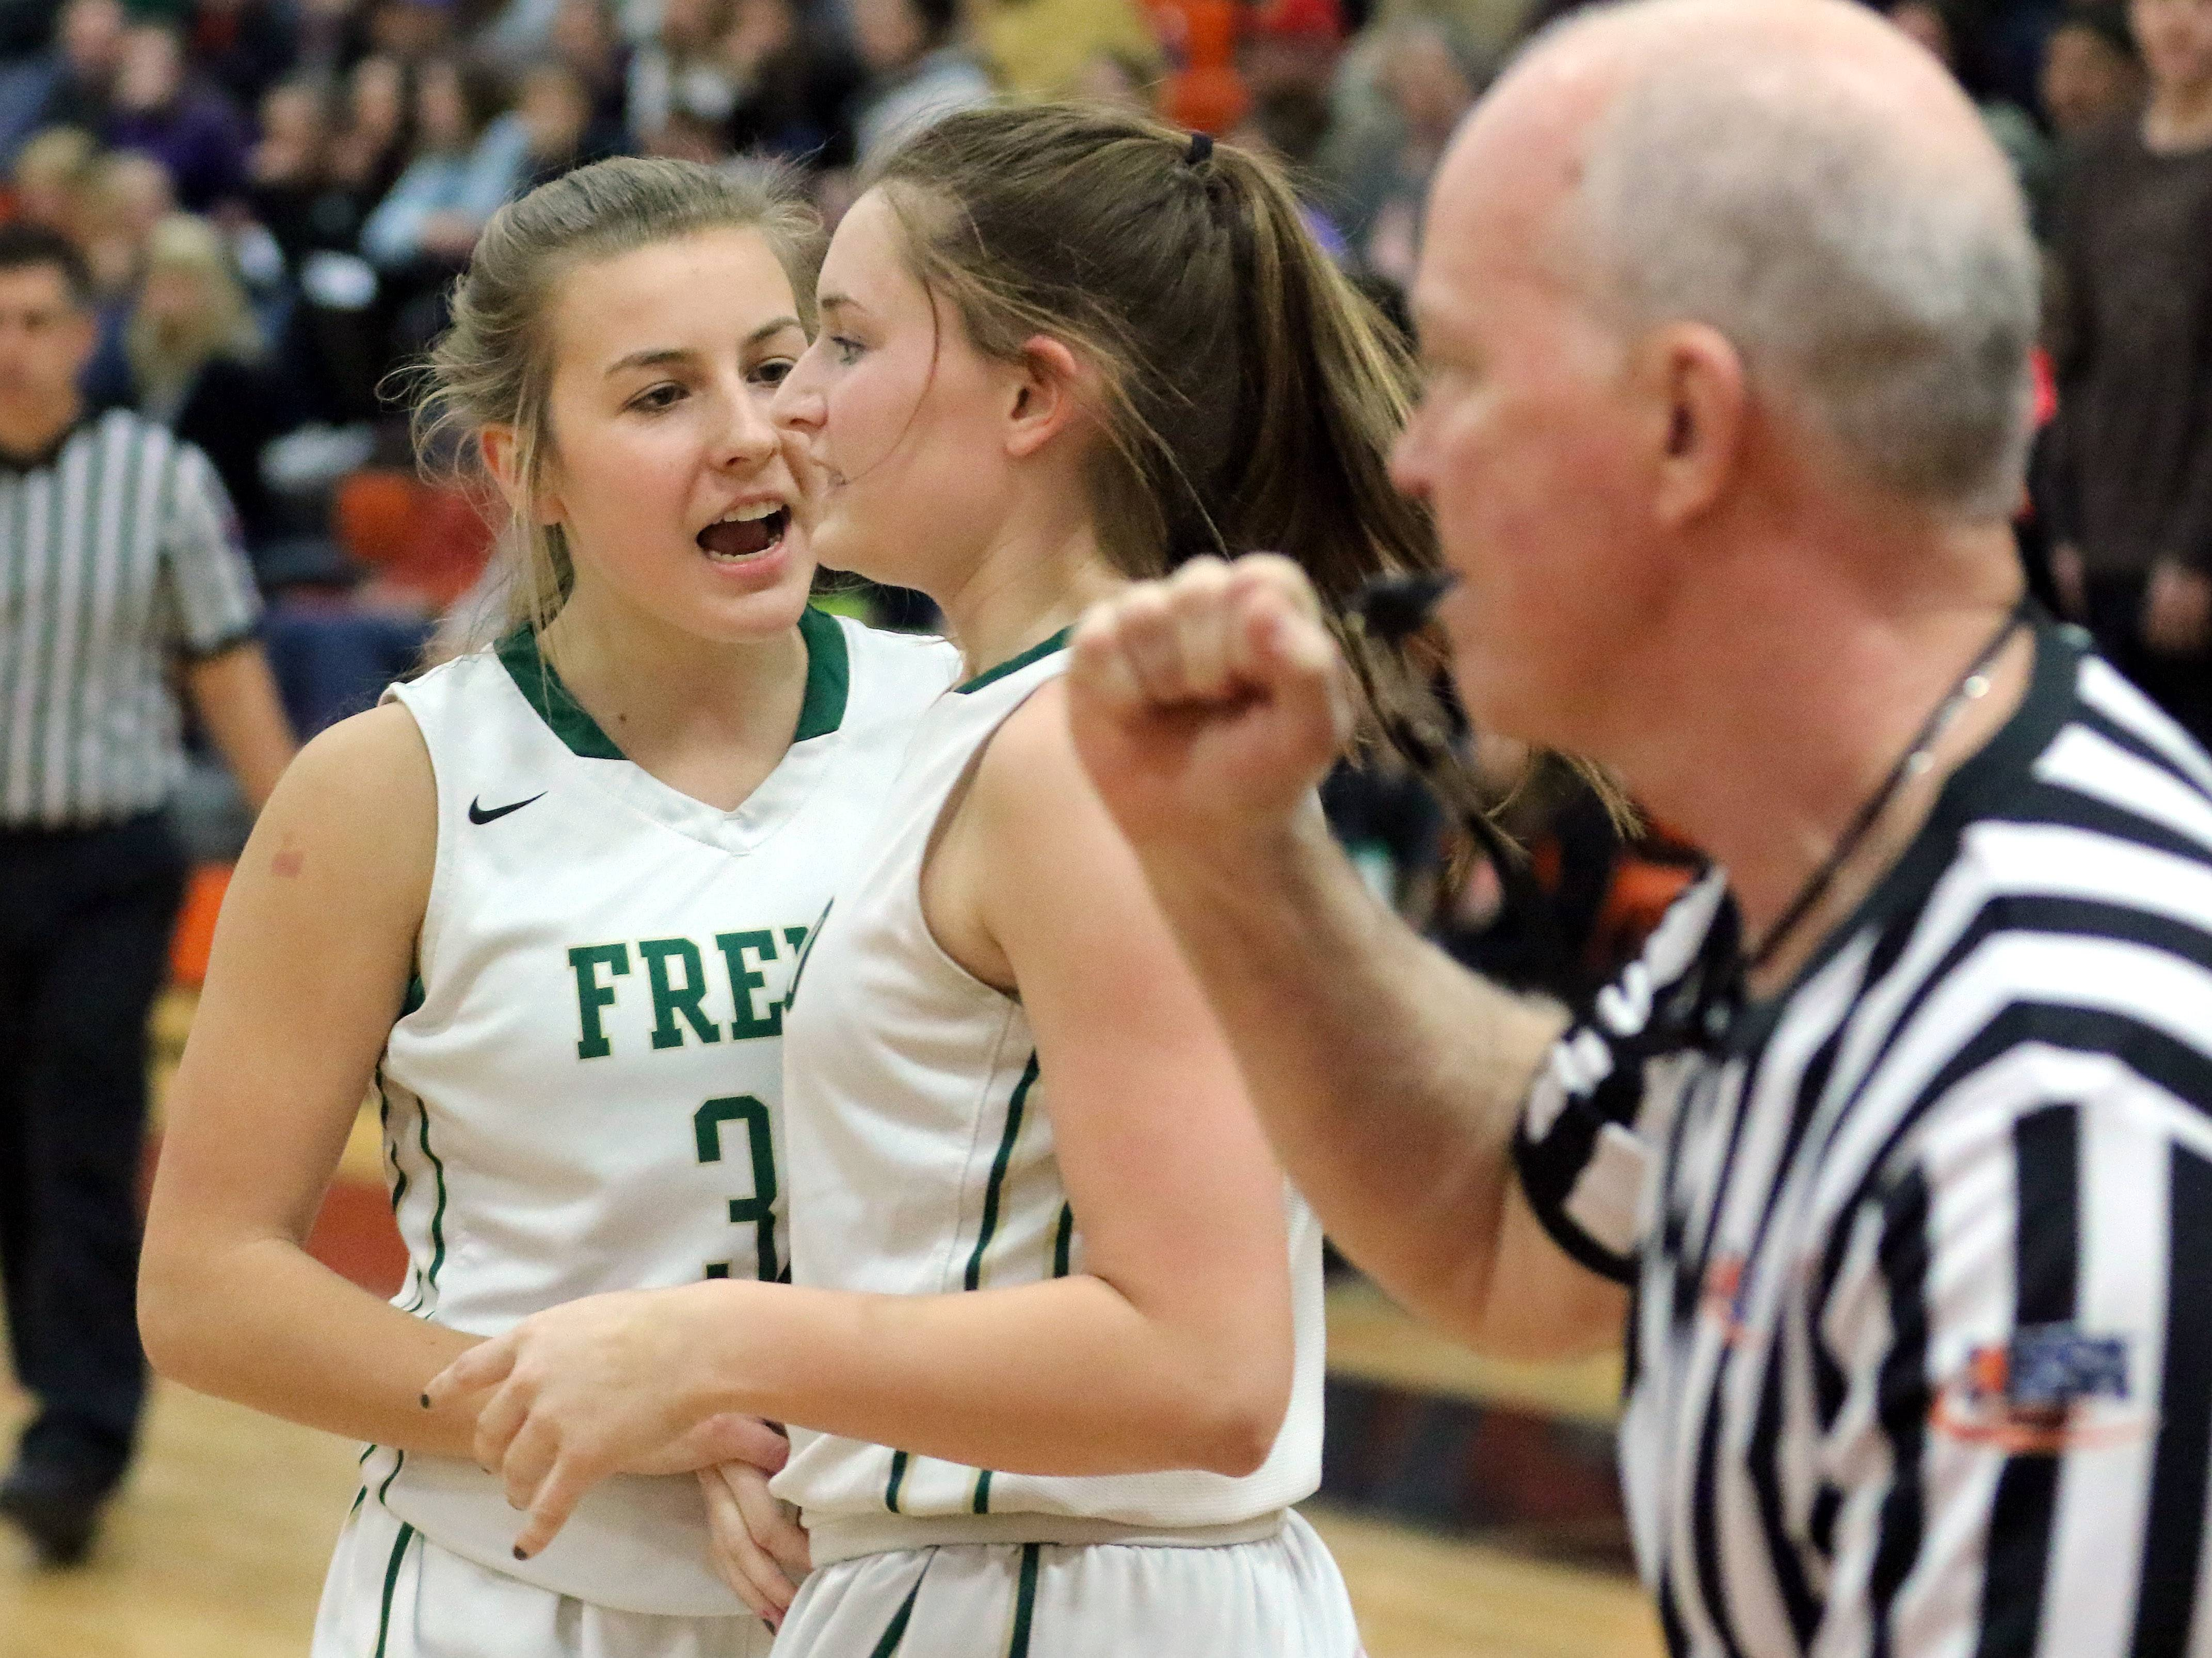 Fremd's Emily Klaczek, left, celebrates with Missy Adrian after drawing a foul during Class 4A sectional semifinal play Monday at Libertyville.